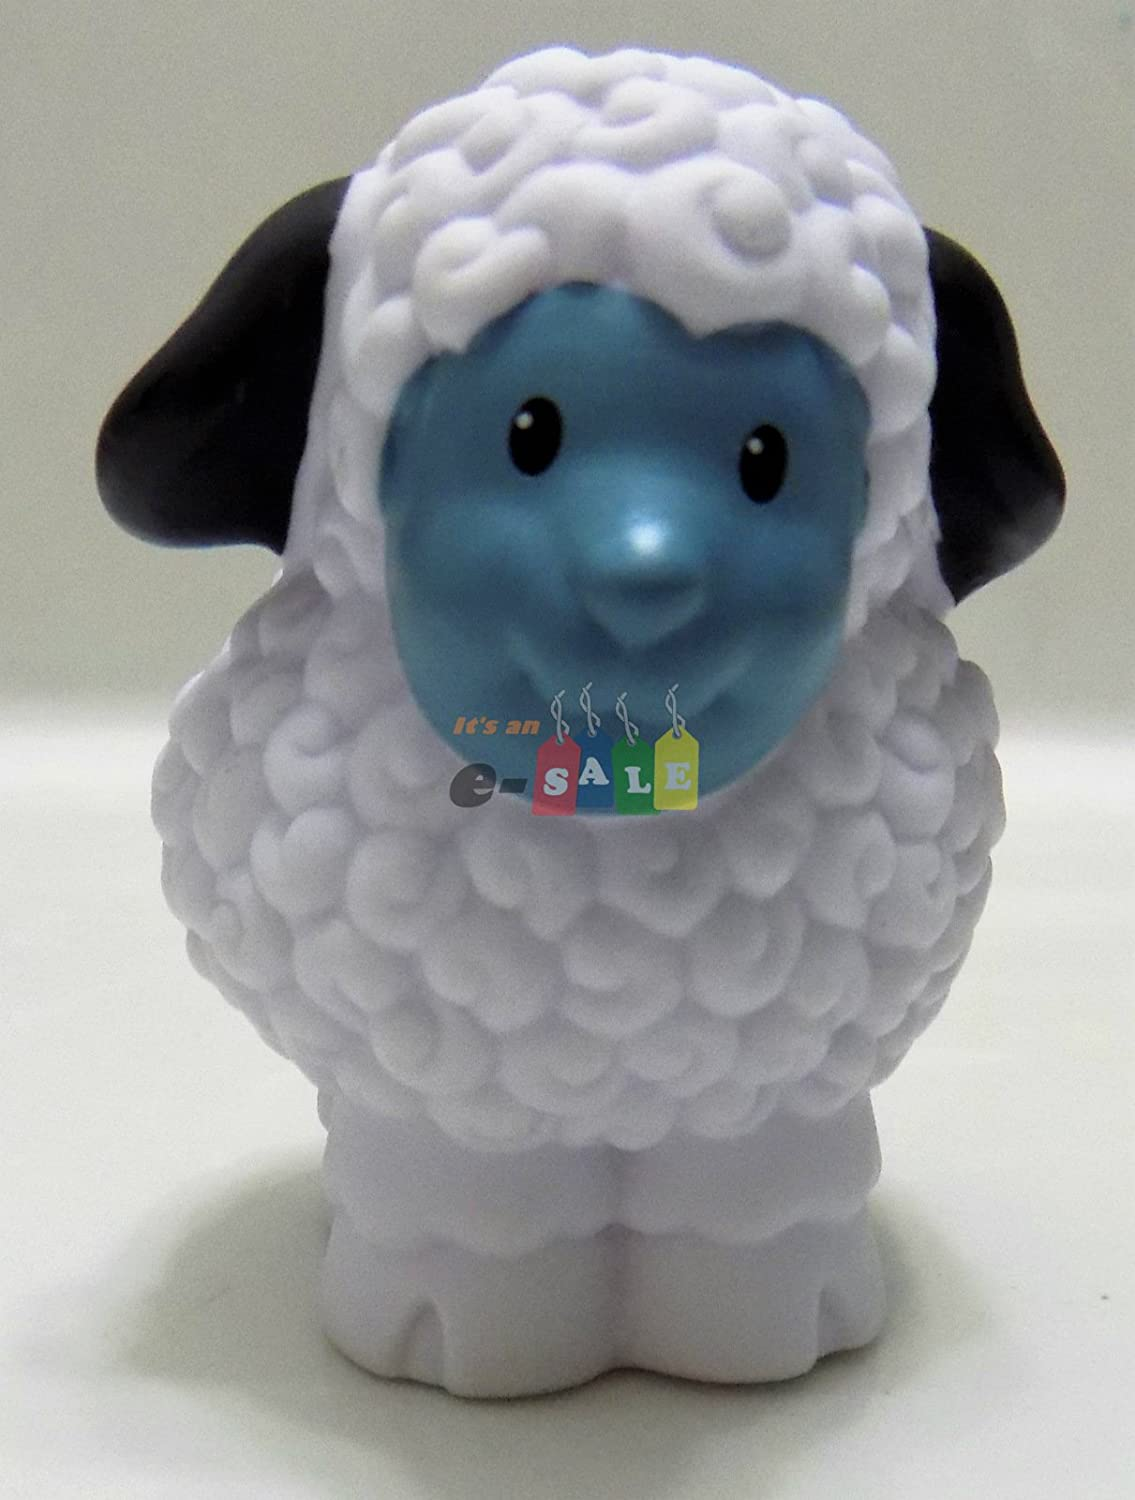 Fisher Price Little People Farm Sheep Figure toy